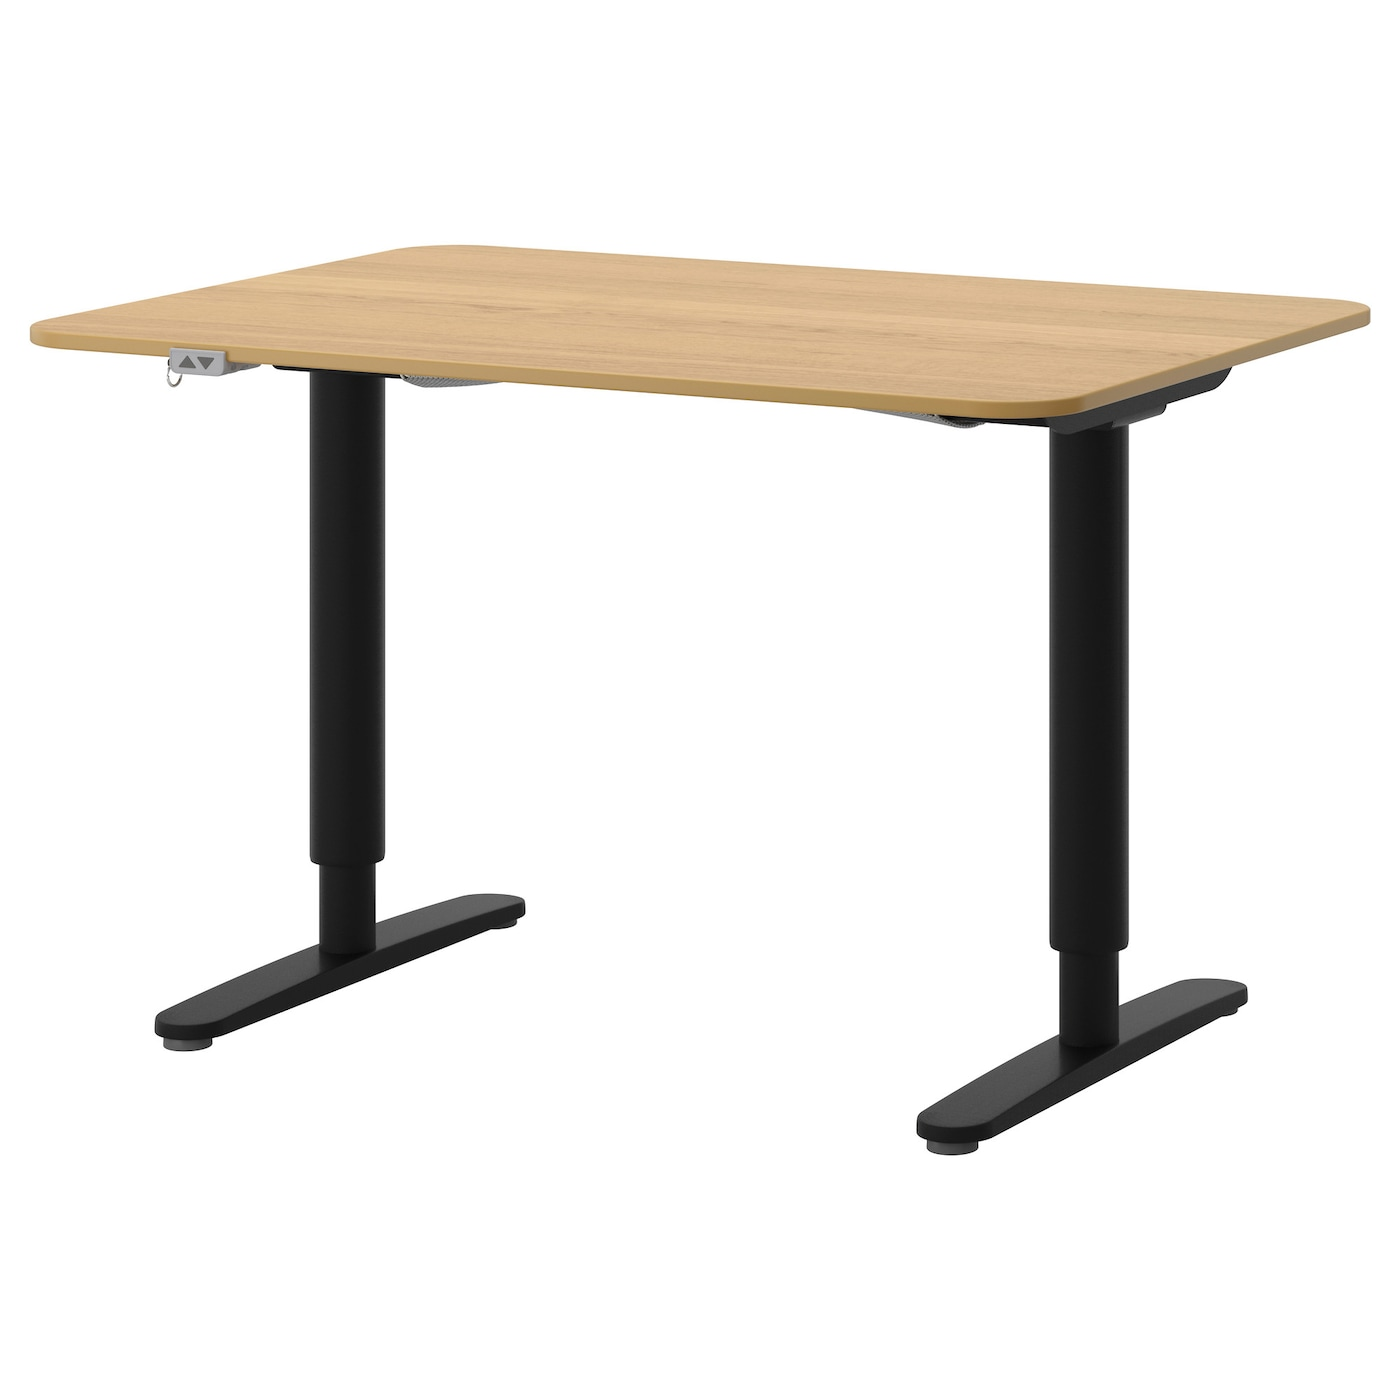 IKEA BEKANT desk sit/stand 10 year guarantee. Read about the terms in the guarantee brochure.